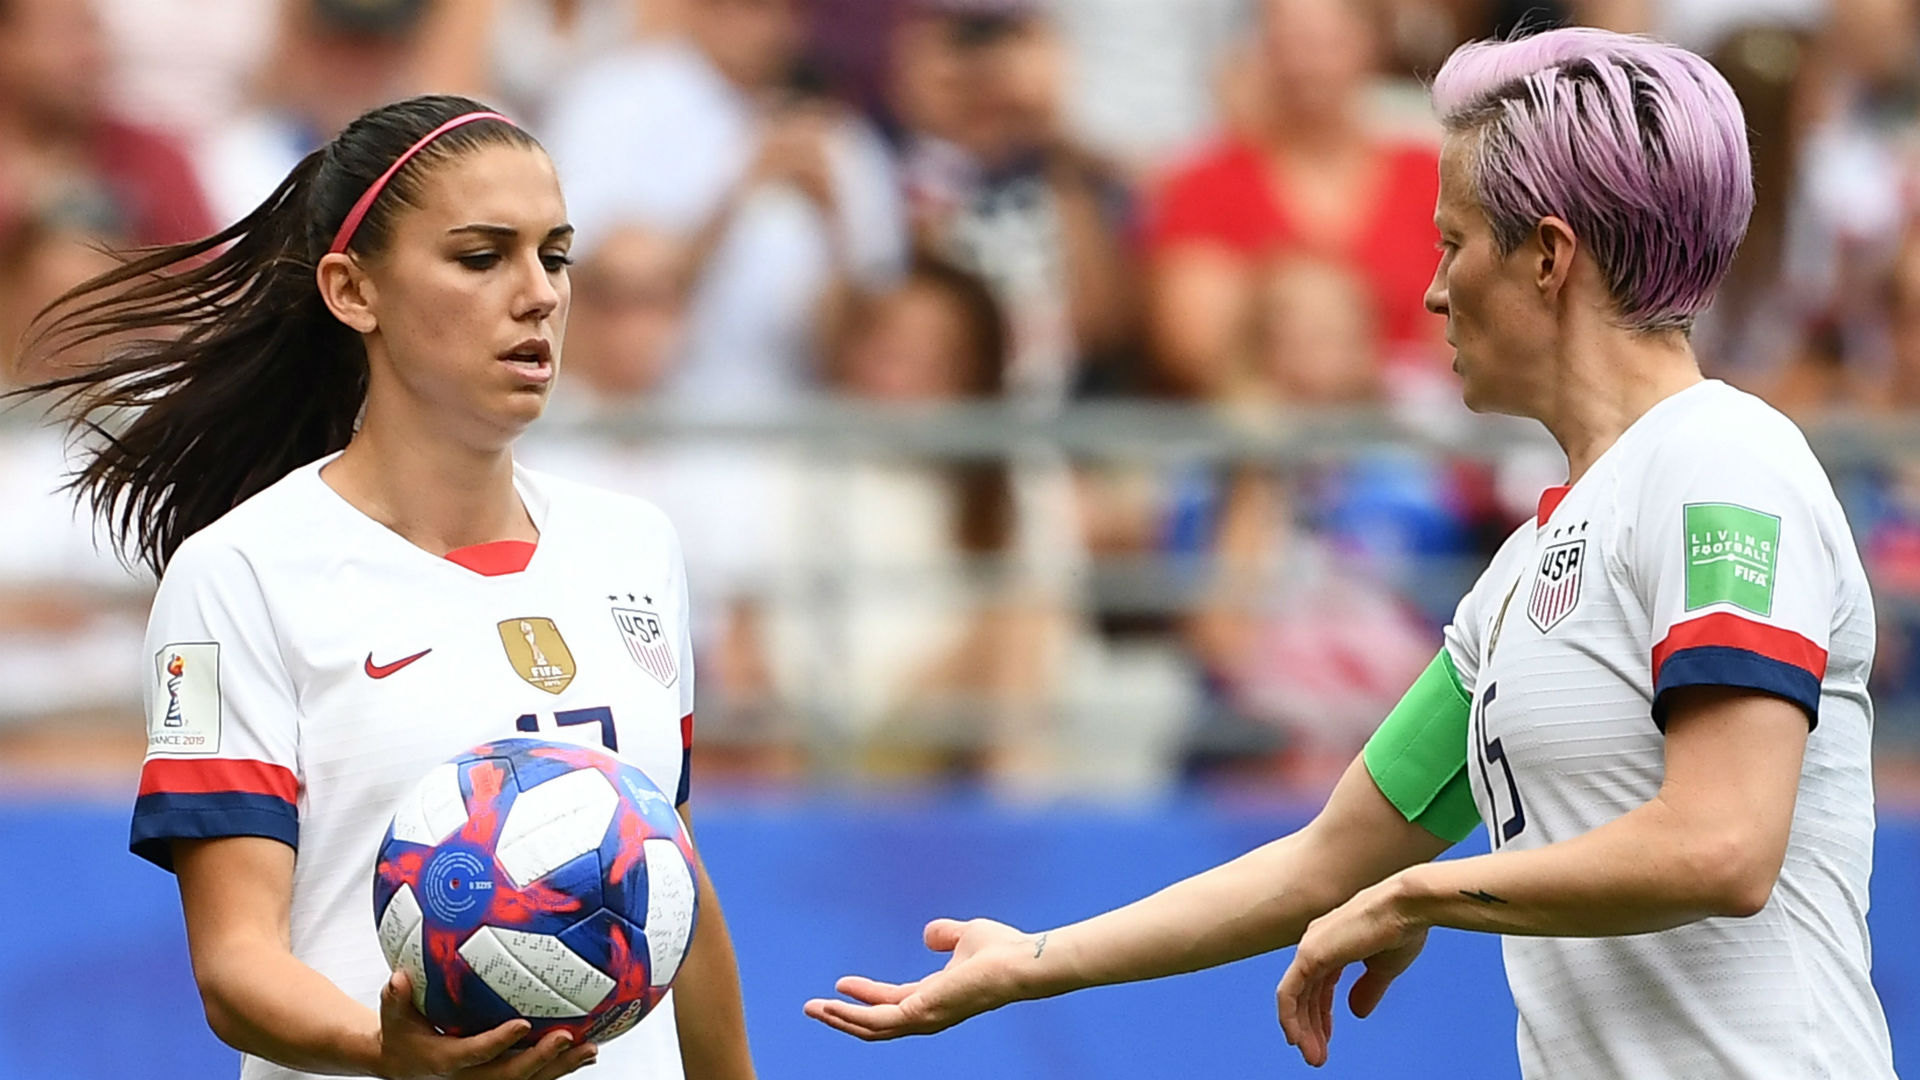 Women's World Cup 2019: USA's Alex Morgan, Megan Rapinoe explain why they switched taking penalty kick